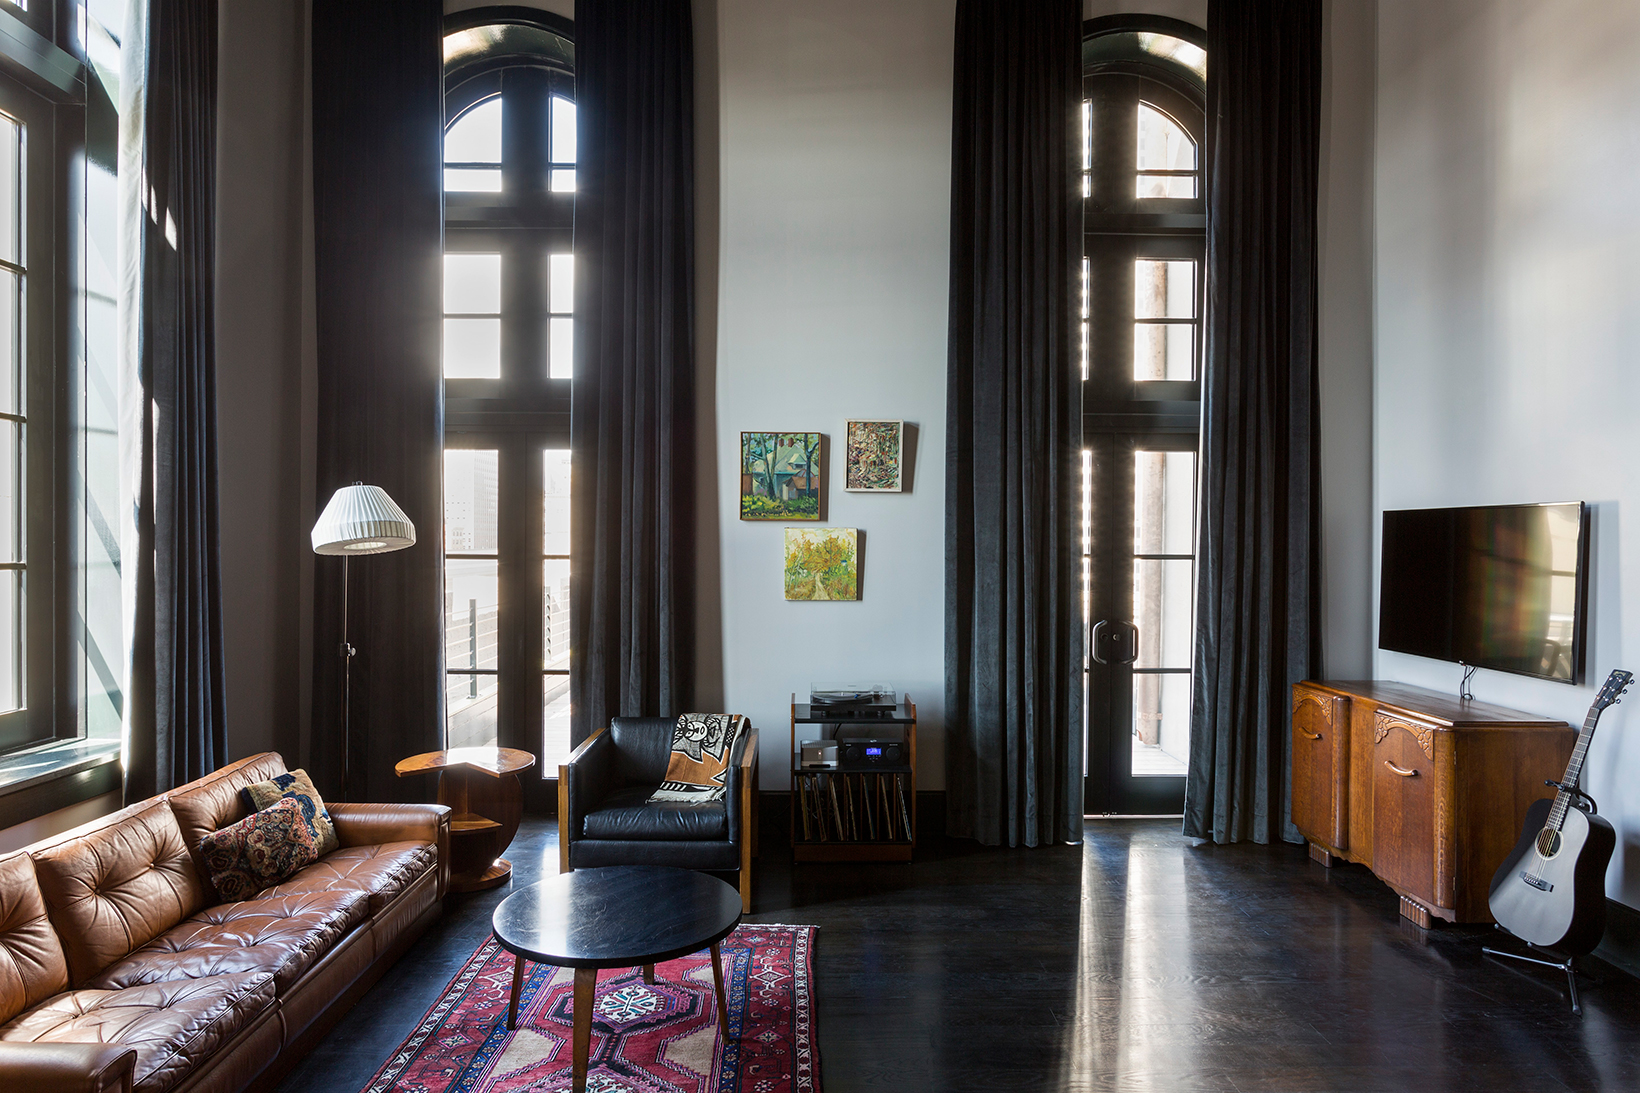 Ace hotel new orleans tour hypebeast for New design hotels 2016